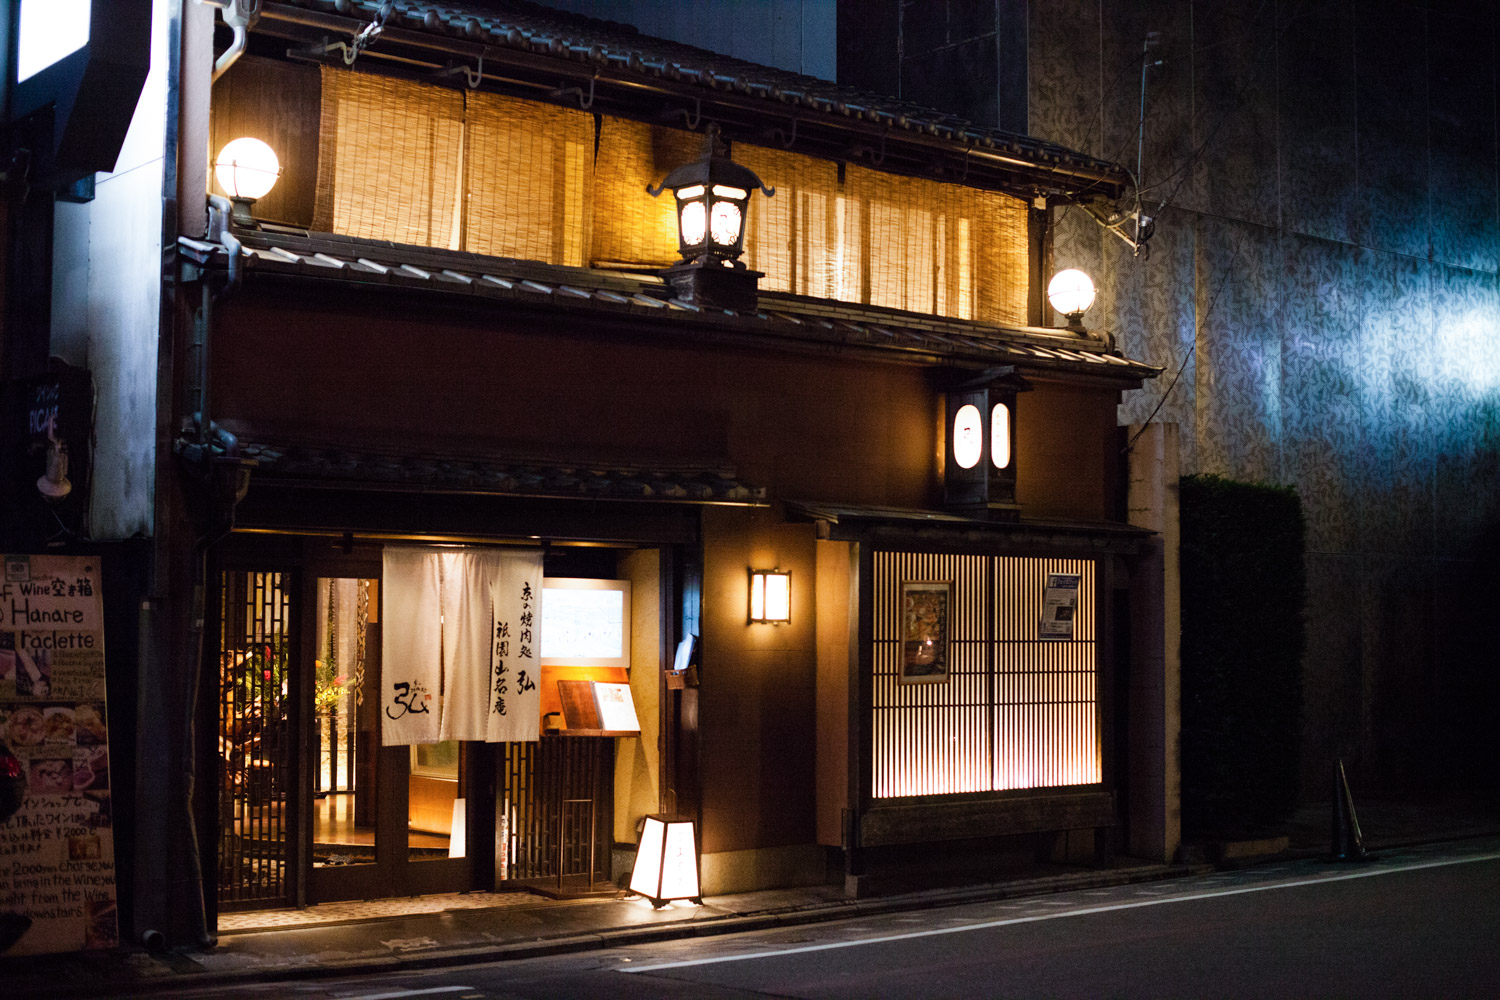 kyoto by night, kyoto nuit, gion nuit, gion night, lanternes japonaises, japon ambiance nocturne, japon nuit